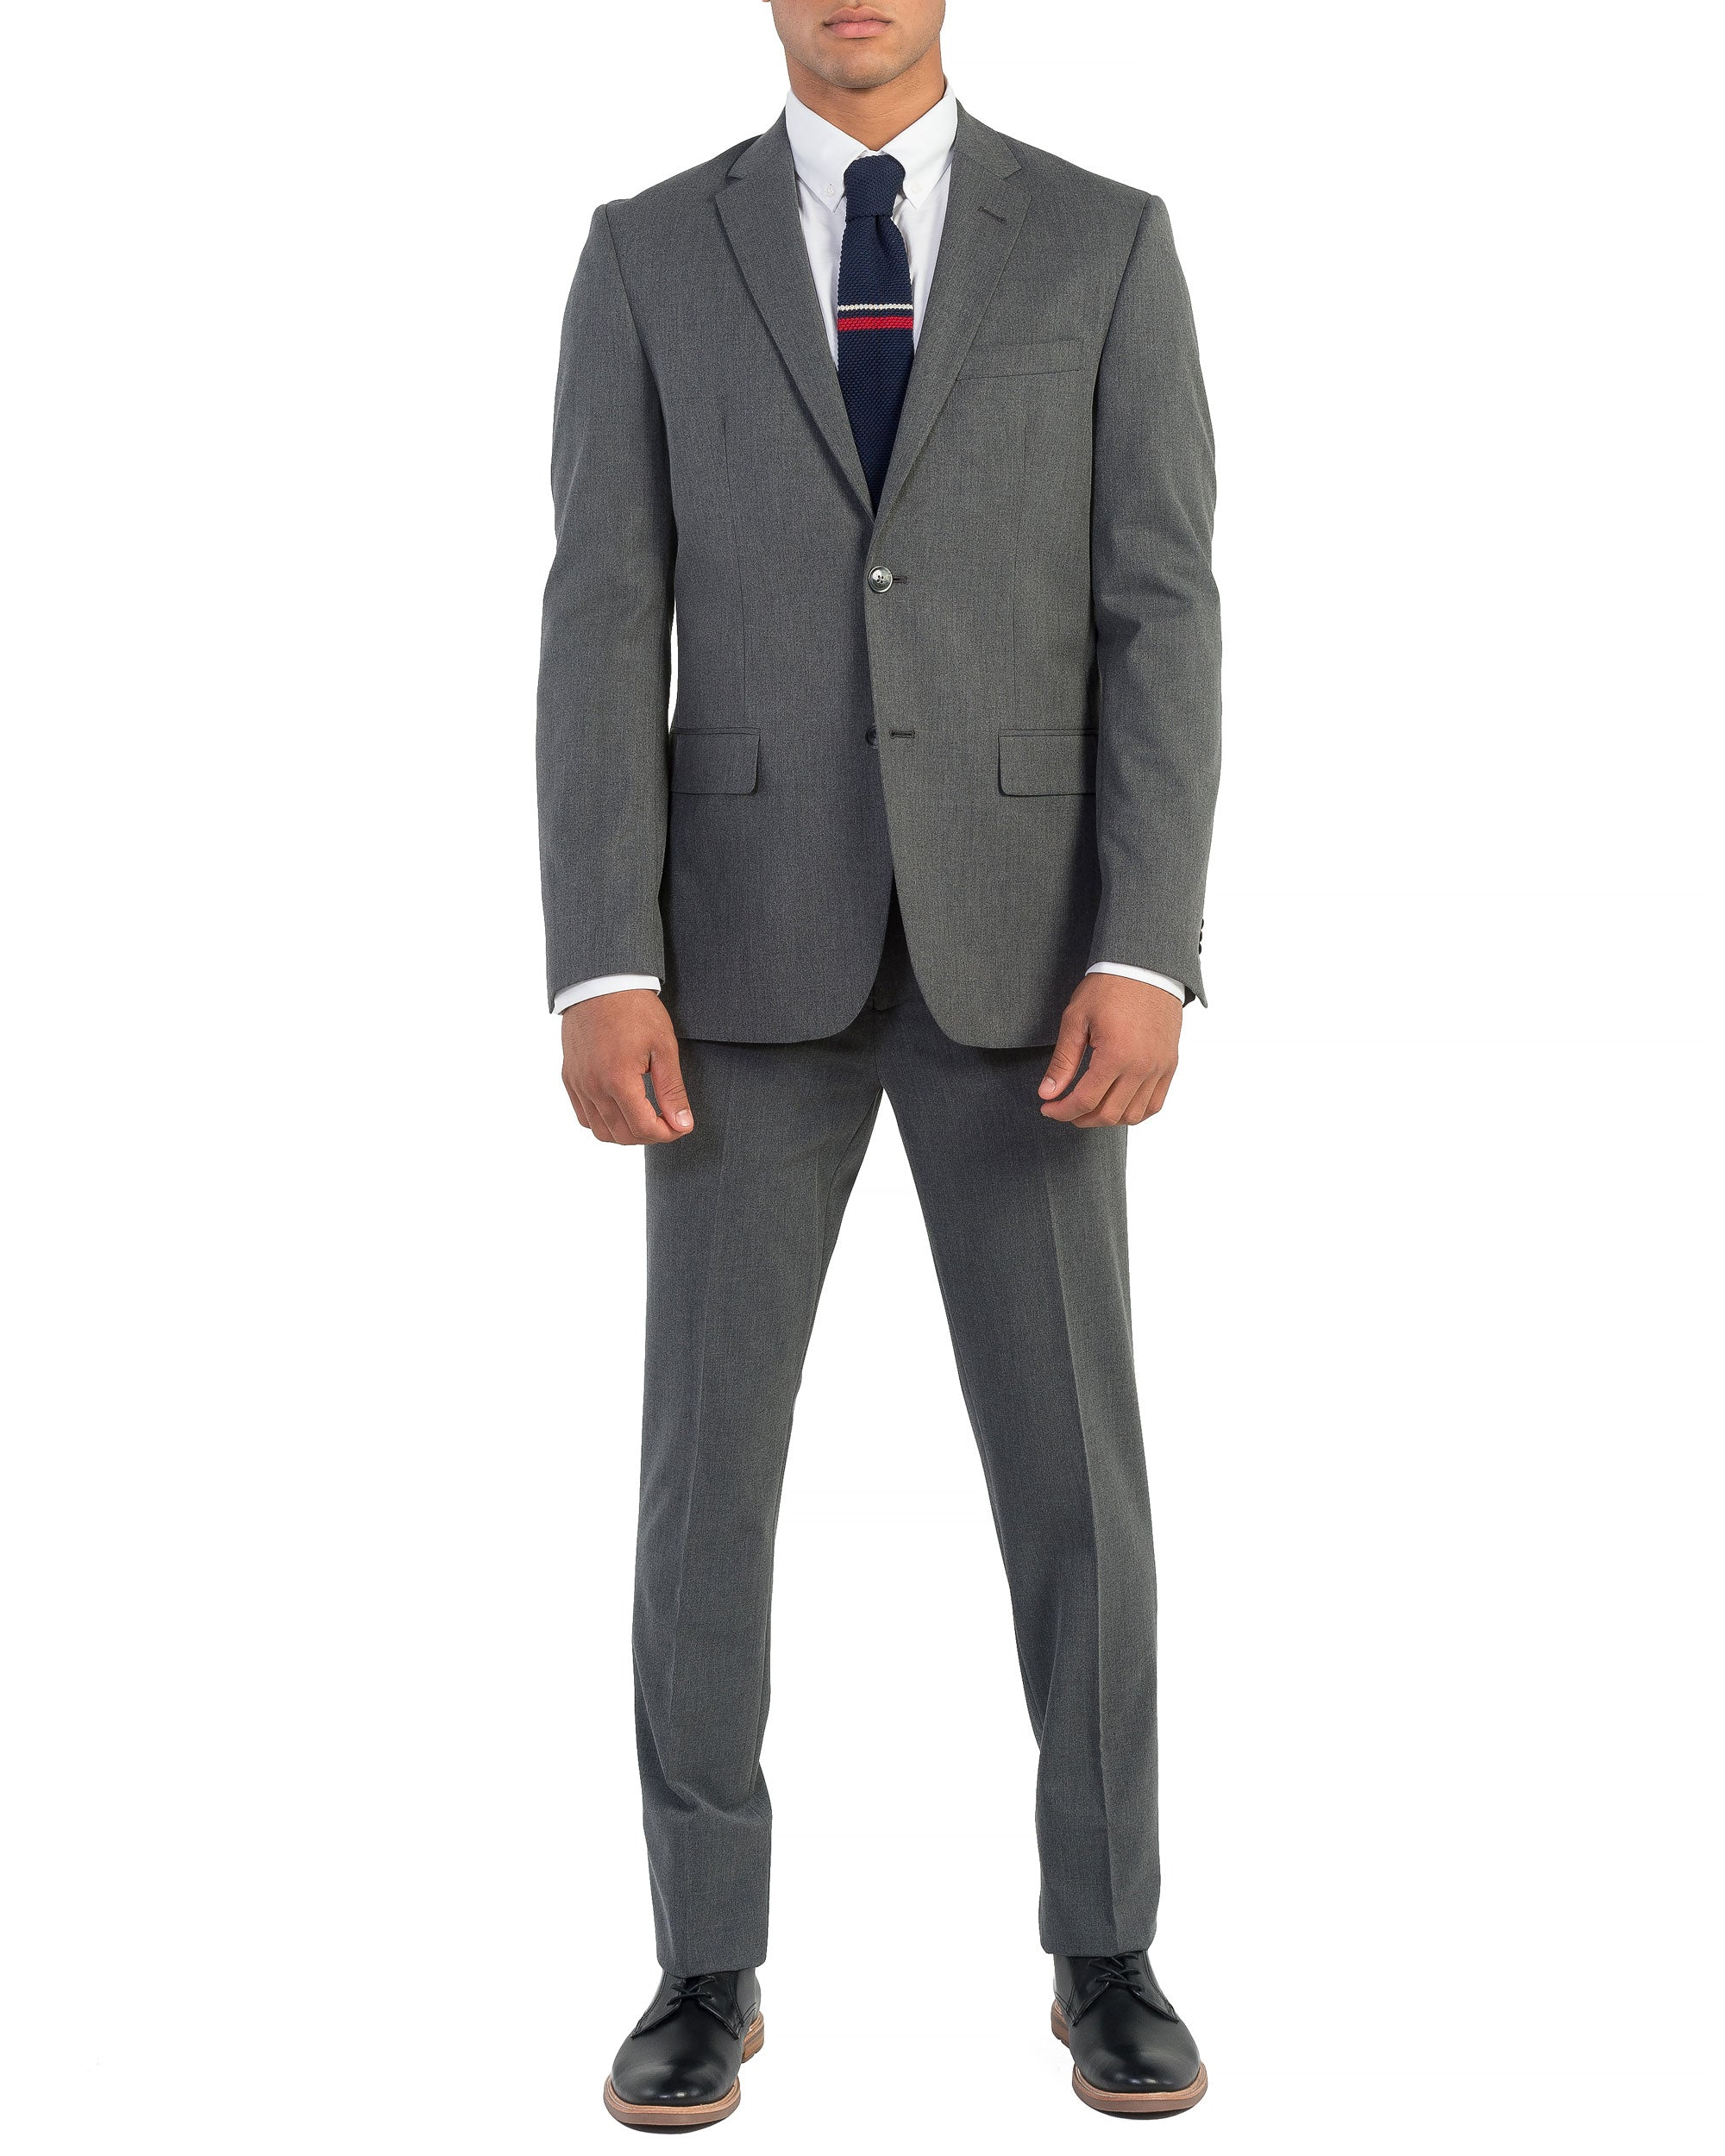 Bell Bi-Stretch Two-Button Side Vent Suit - Grey